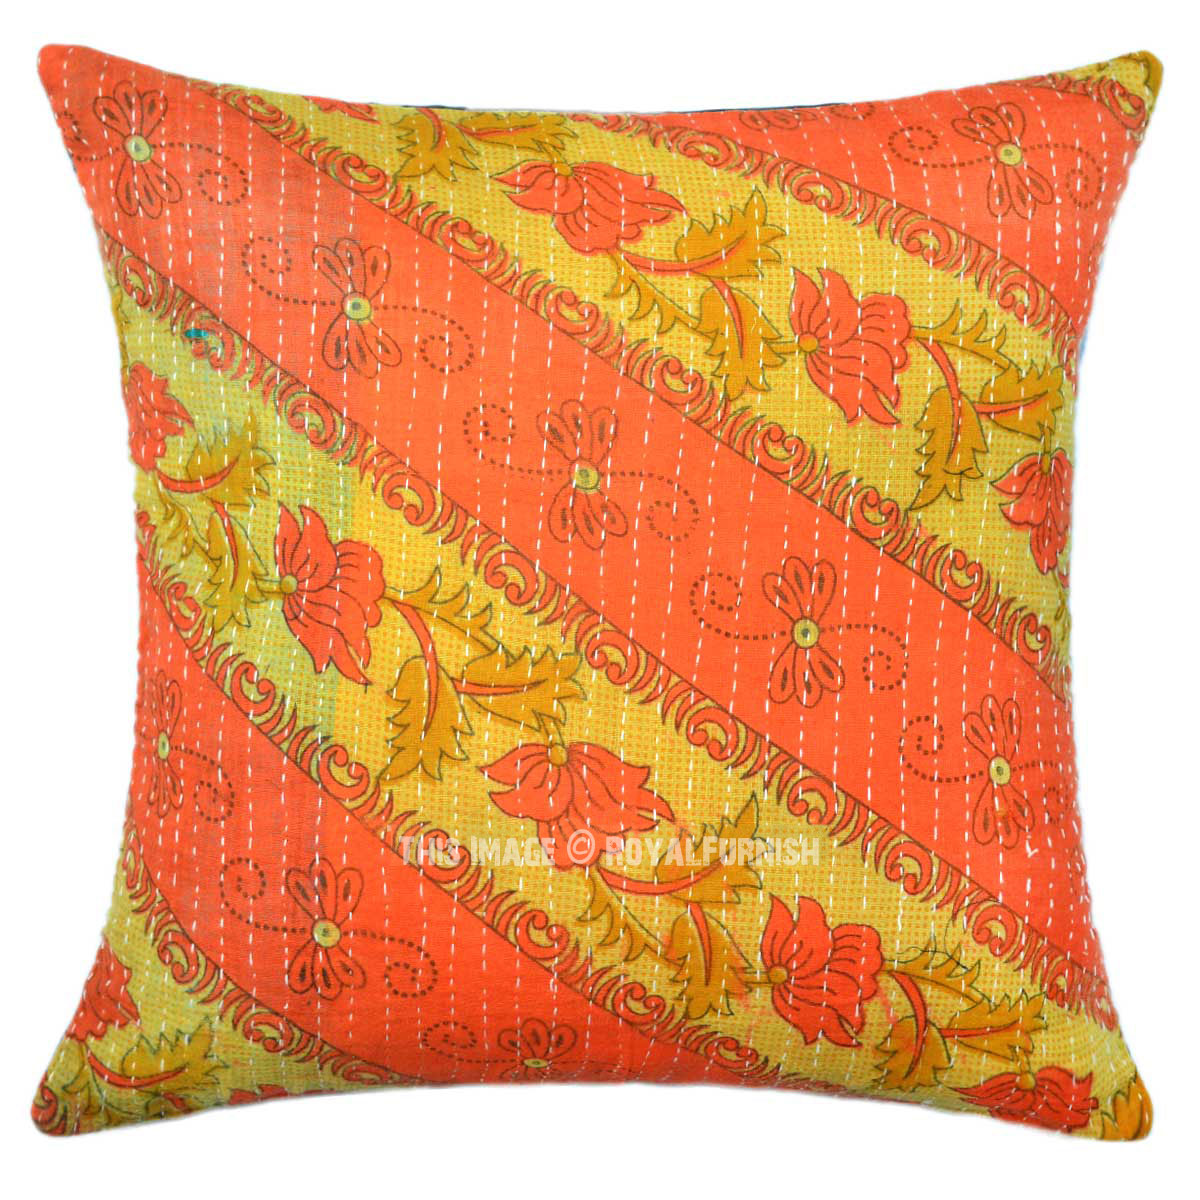 Vintage Decorative Throw Pillows : Decorative 16X16 Vintage Kantha Throw Pillow Cover - RoyalFurnish.com